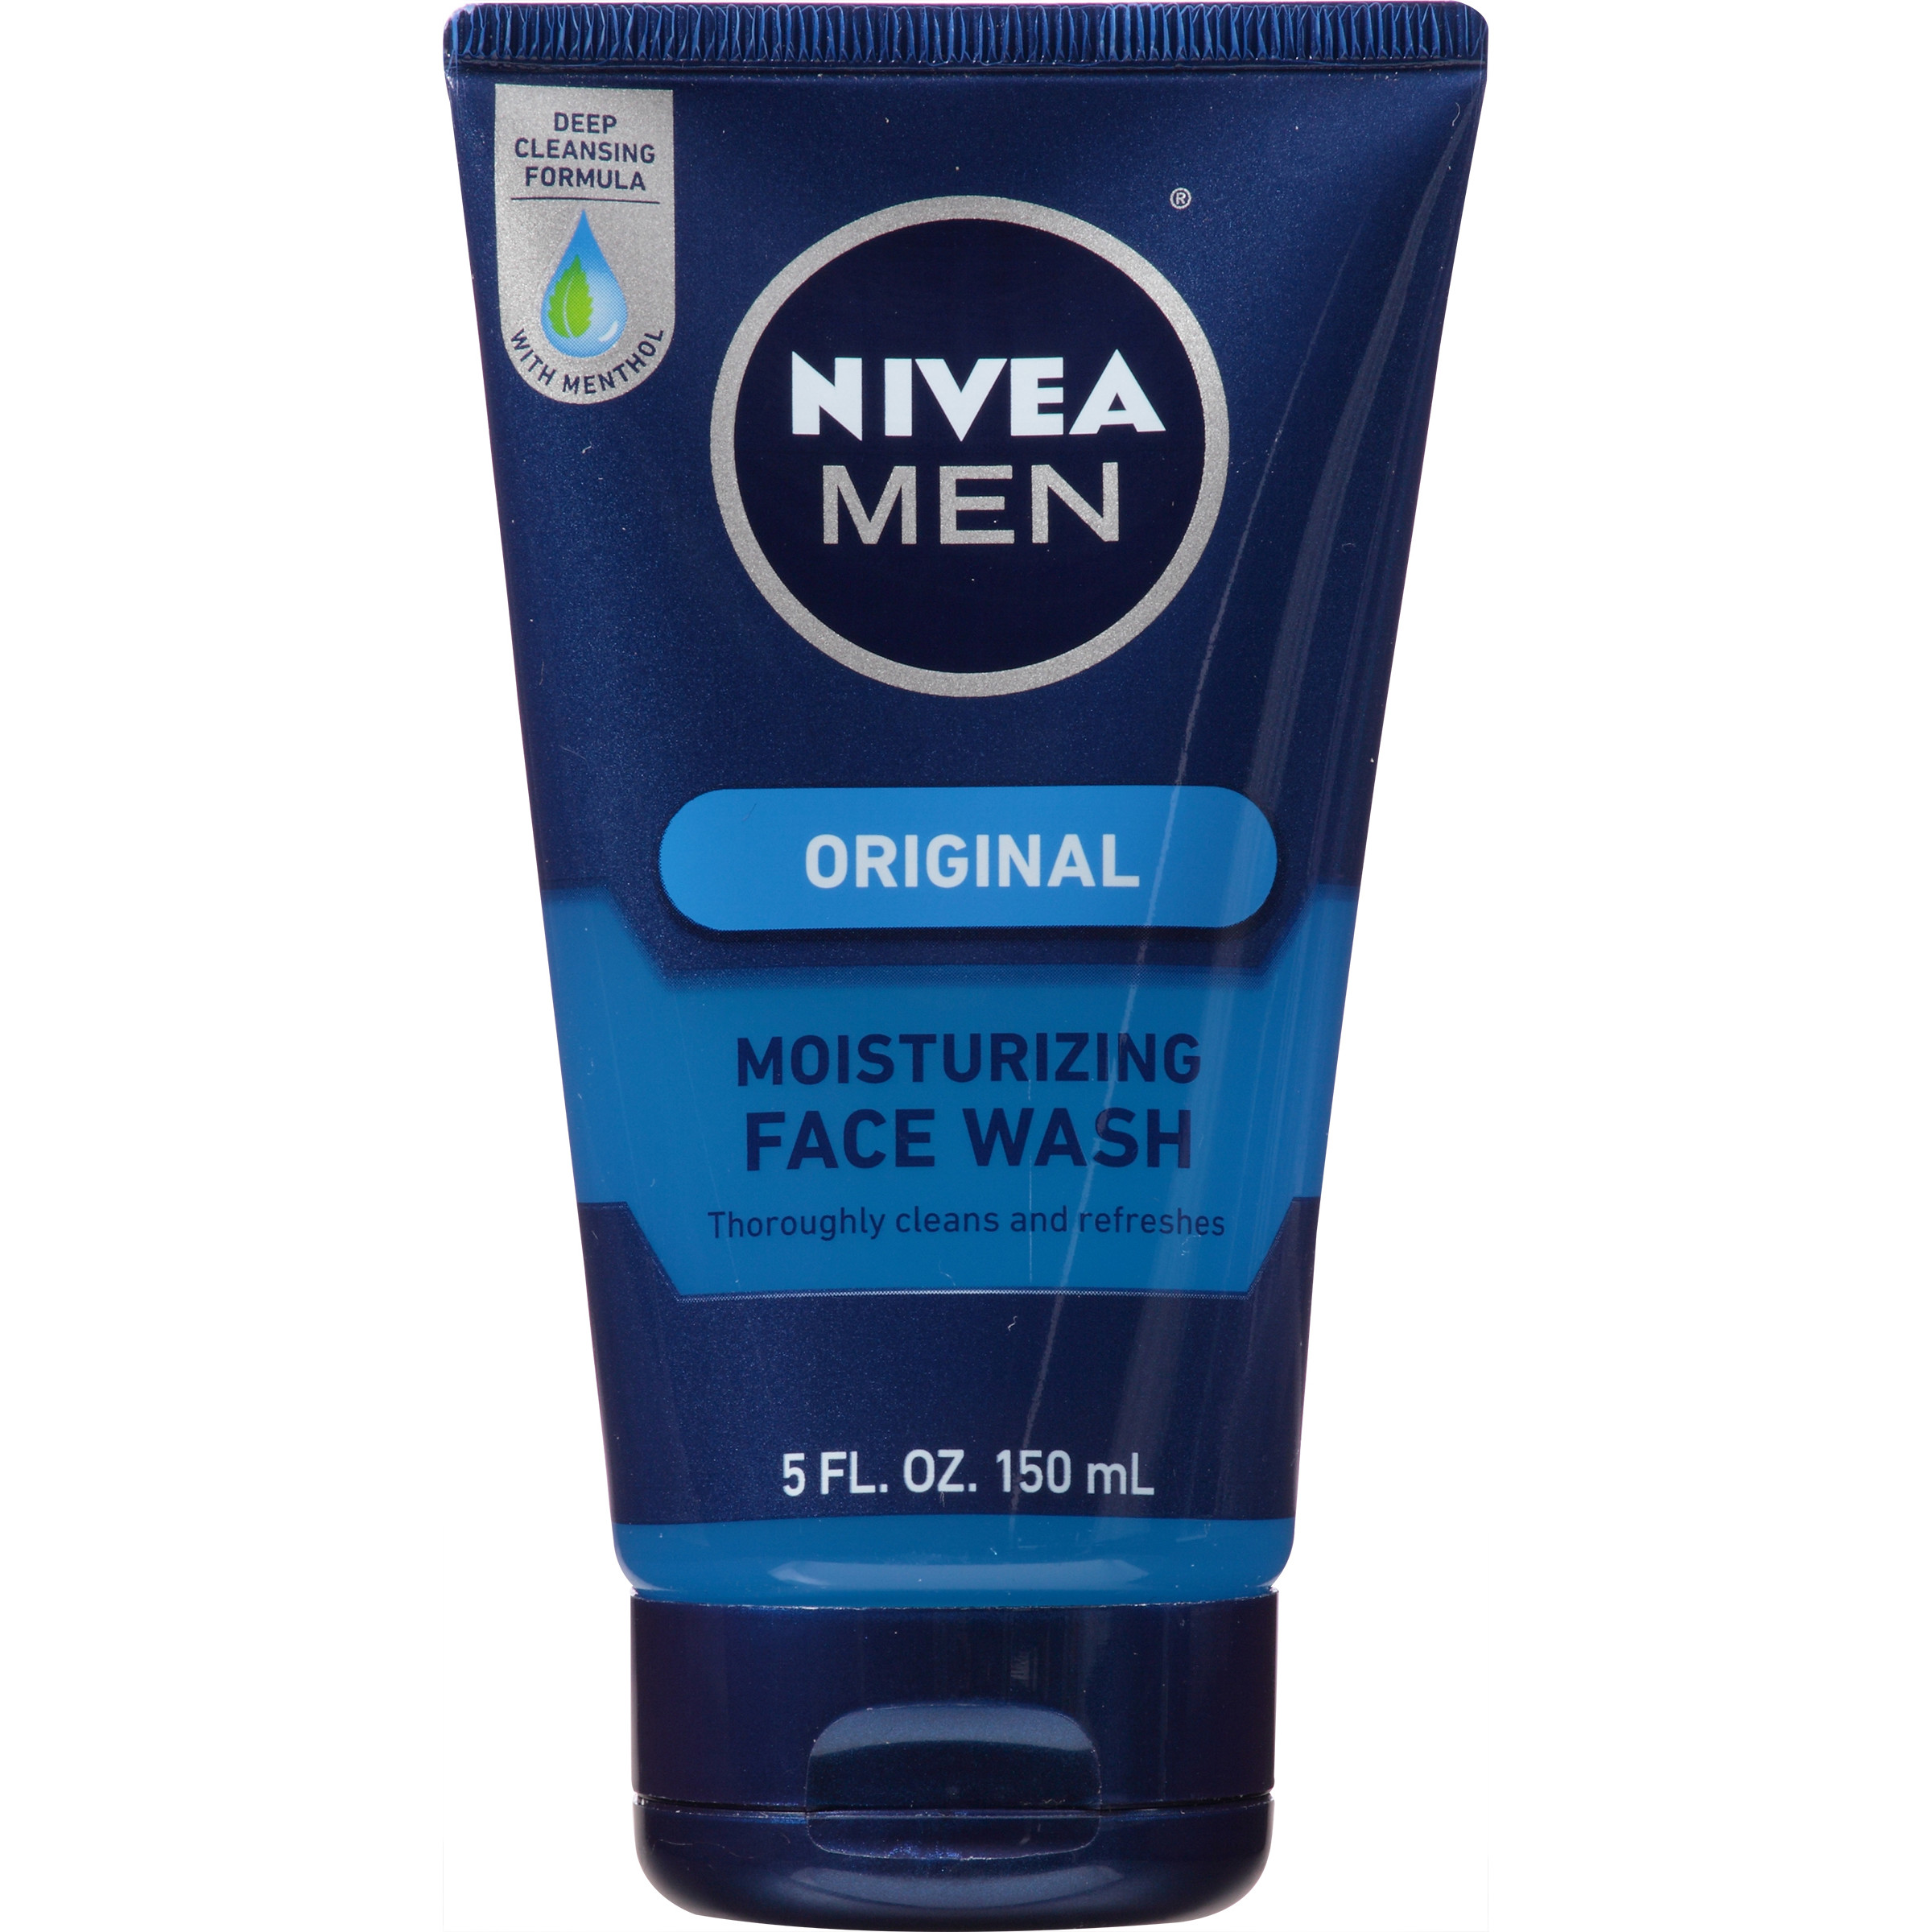 NIVEA® Men Original Moisturizing Face Wash 5 fl. oz.